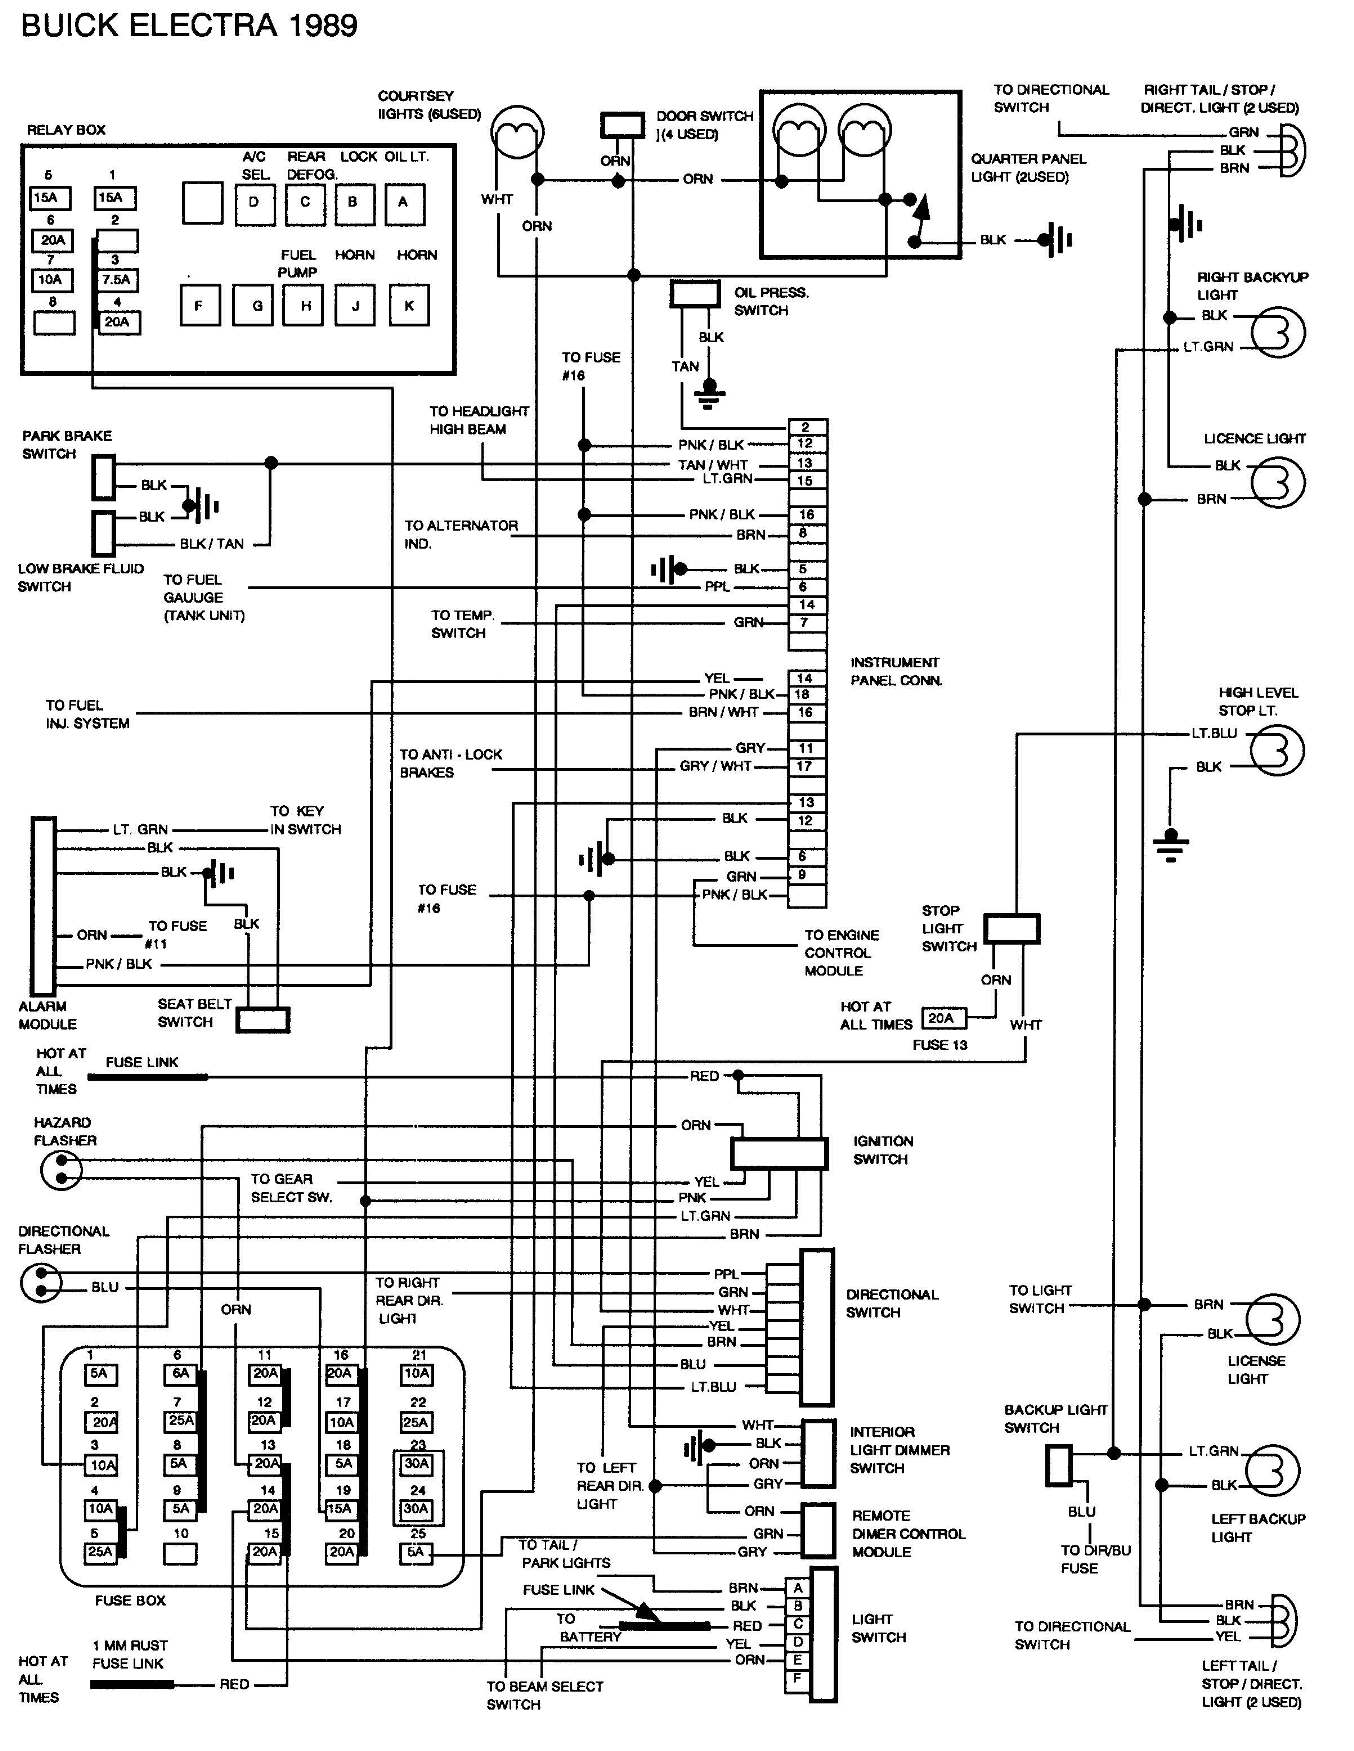 [SCHEMATICS_4HG]  DIAGRAM] 2015 Gmc Canyon Wiring Diagram FULL Version HD Quality Wiring  Diagram - INVESTGARDENDIAGRAM.K-DANSE.FR | 2015 Gmc Wiring Diagram |  | K-danse.fr